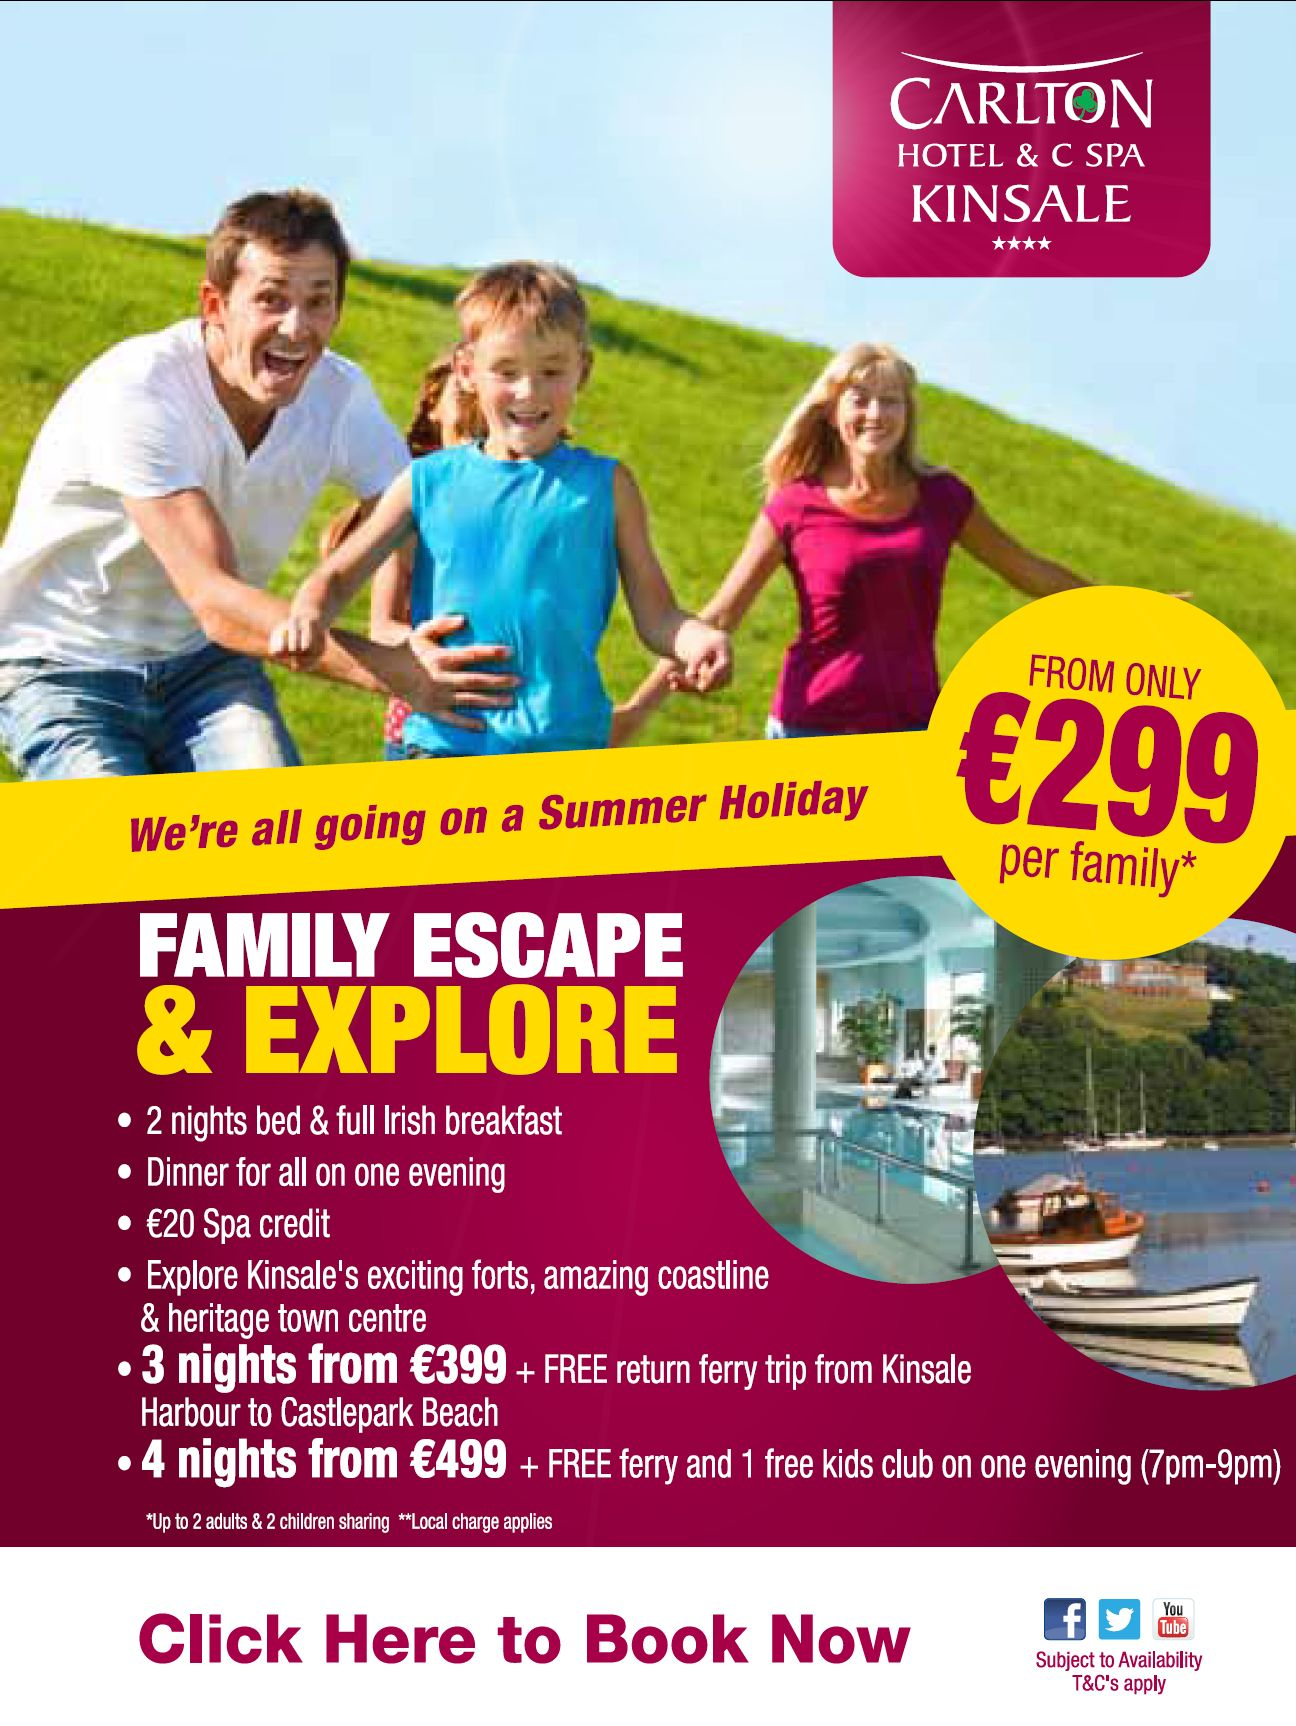 Best Family Package in Cork